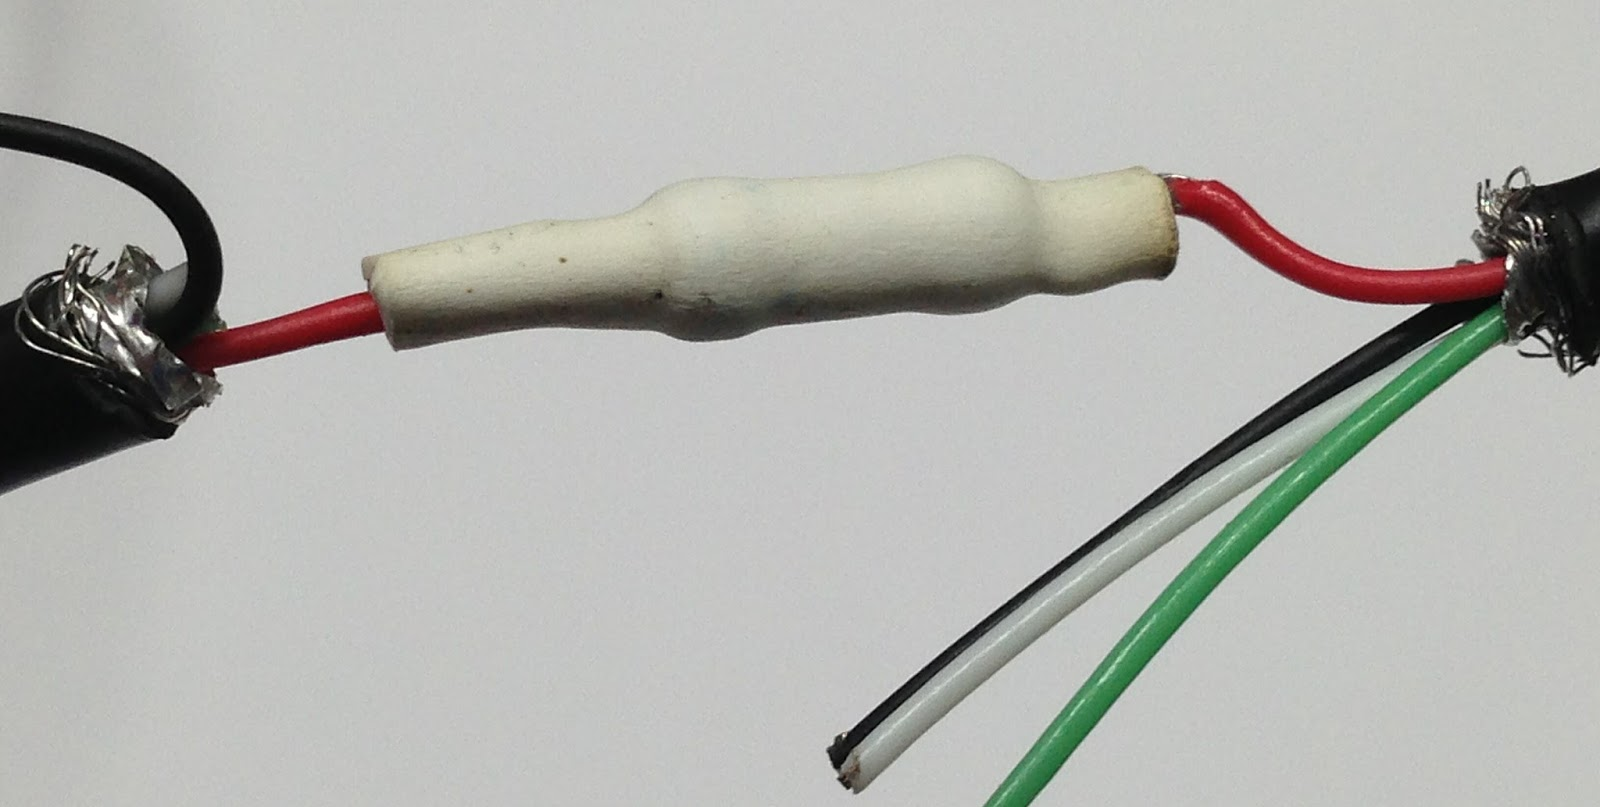 Next, fold the cable back on itself and tape or zip-tie the cable together.  The tape or zip-tie acts as a strain-relief to prevent stress on the solder  ...